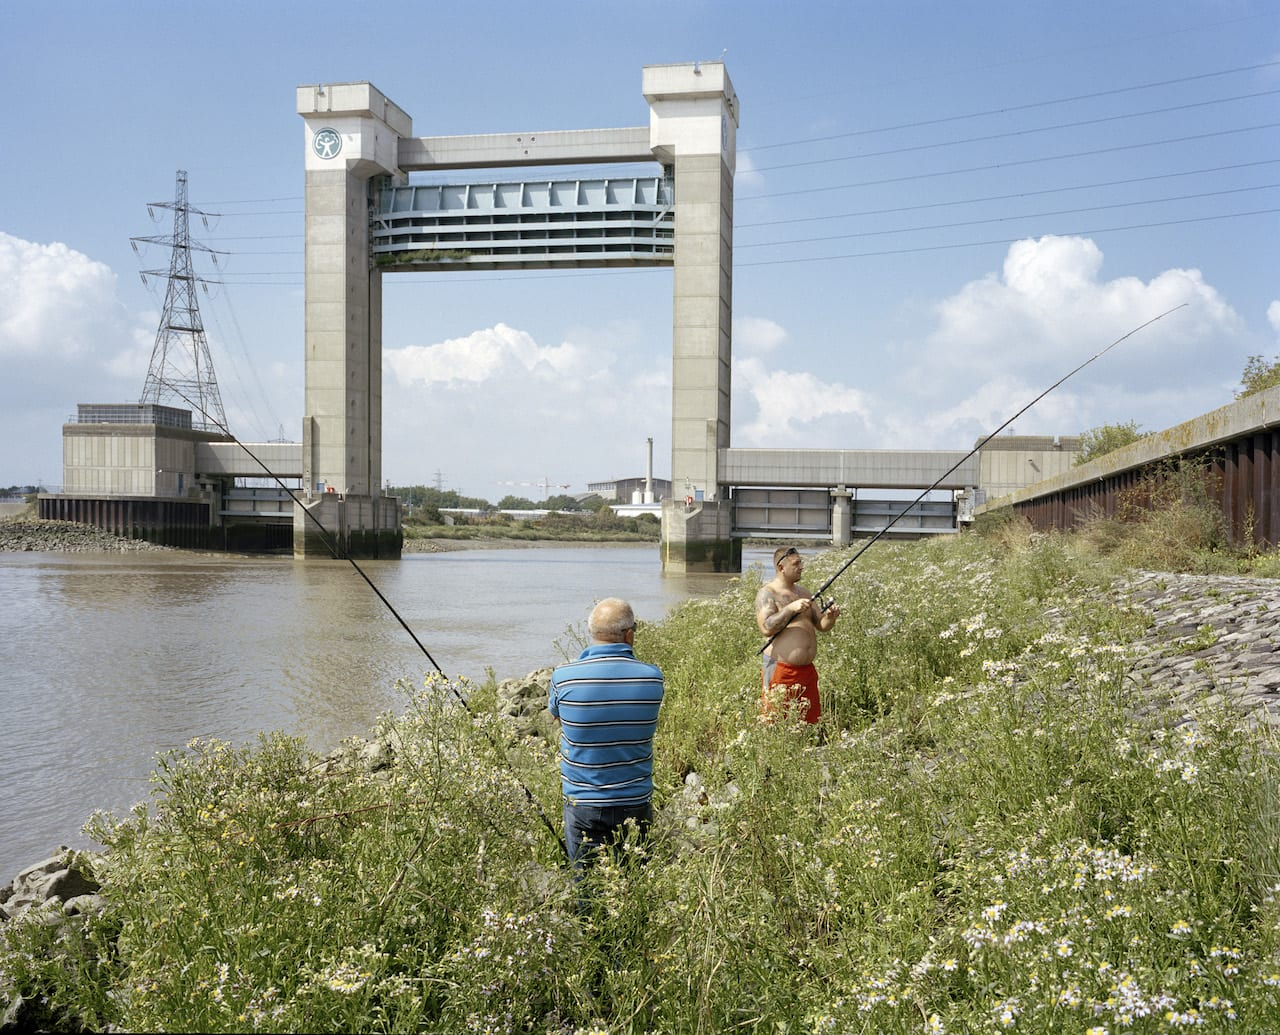 Fishermen at the mouth of Barking Creek. With raised flood barrier in the background. From the series London Ends © Philipp Ebeling